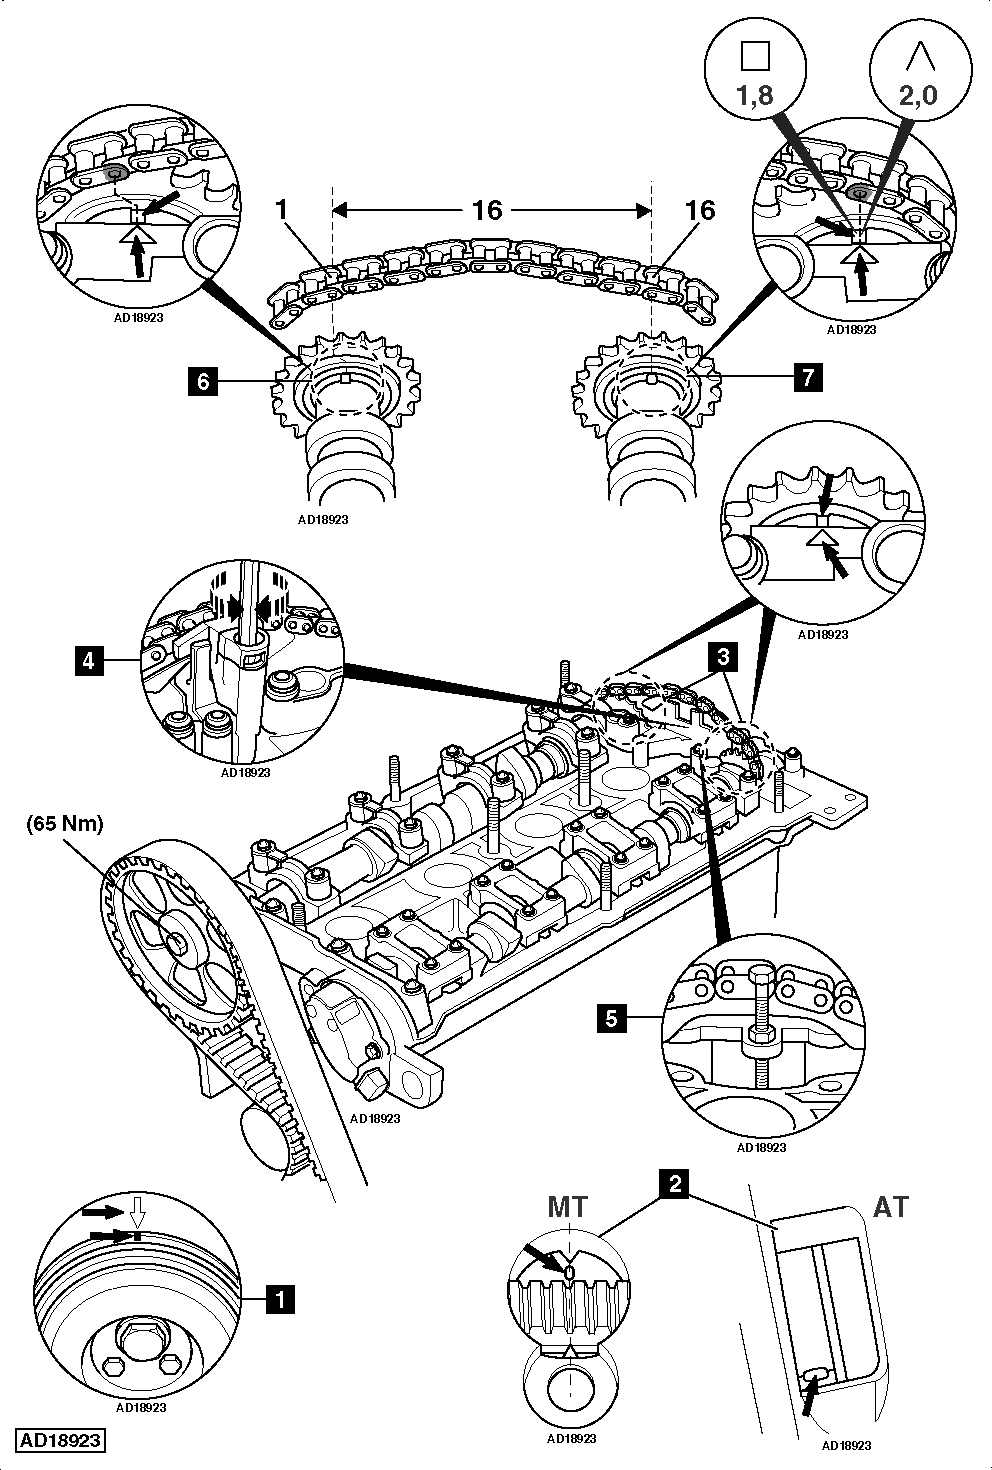 2005 Ford Freestyle V6 3 0l Serpentine Belt Diagram moreover How To Replace Timing Belt On Audi A3 8p Mk2 2 0 Tdi 2005 2008 Bmm additionally How To Replace Timing Chain In Cylinder Head On Vw Polo 9n 1 8 Gti likewise DIY Hyundai Elantra Kia Spectra Timing Belt Replacement further 2002 Chevy Tracker 2 0l 2 5l Serpentine Belt Diagram. on 2010 hyundai tucson timing belt